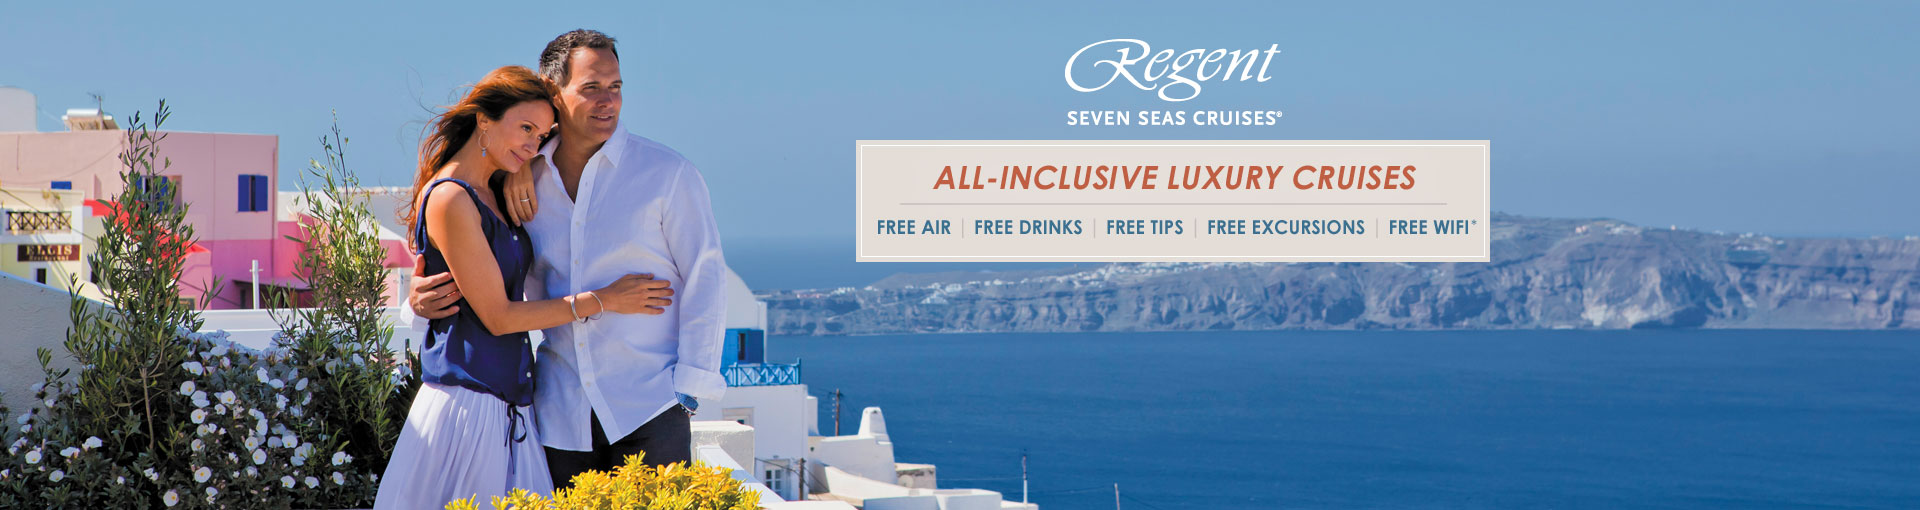 Regent Seven Seas Cruises - All-inclusive Luxury Cruising